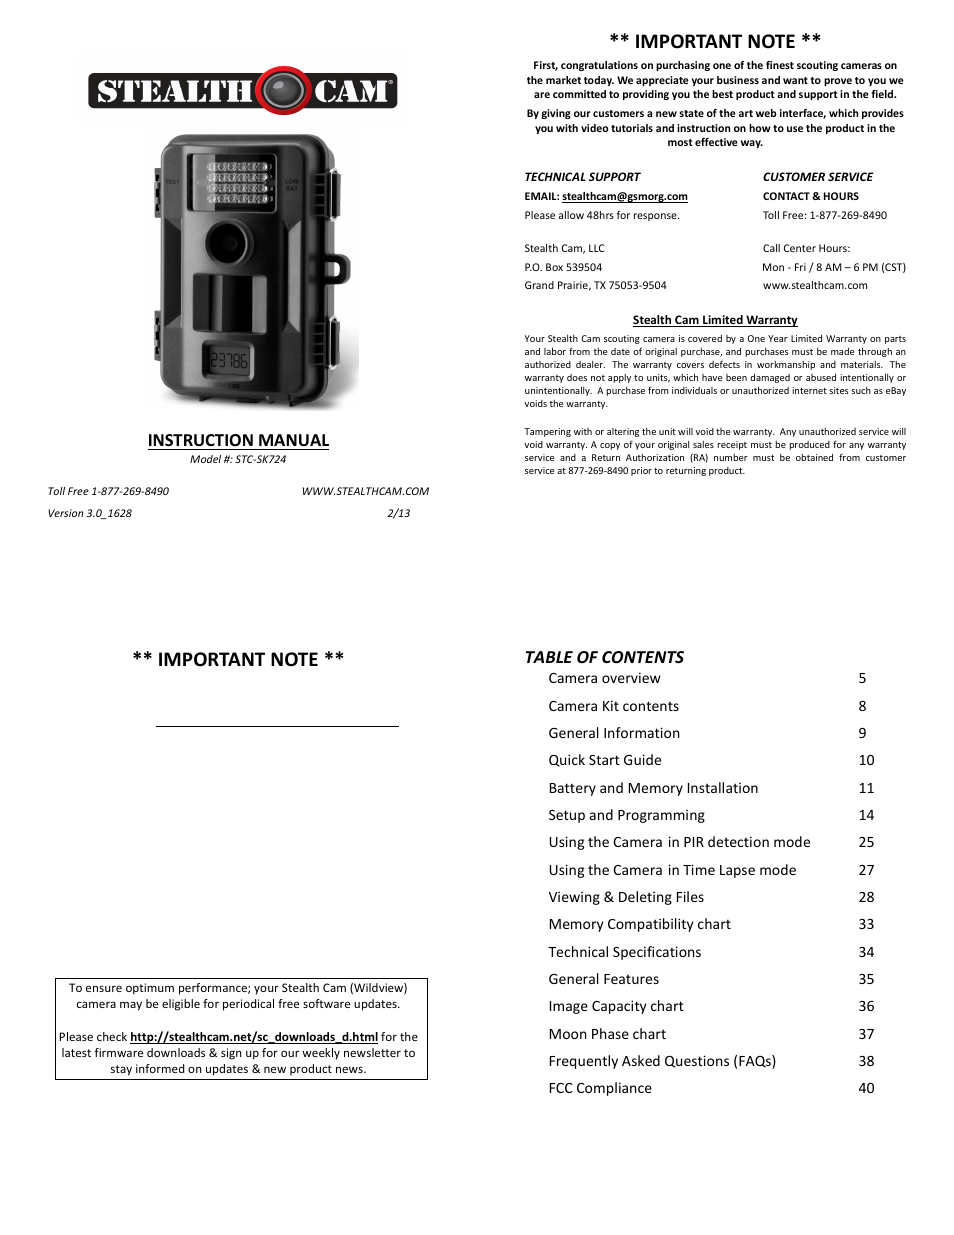 Stealth Cam STC-SK724 Skout 7 User Manual | 10 pages